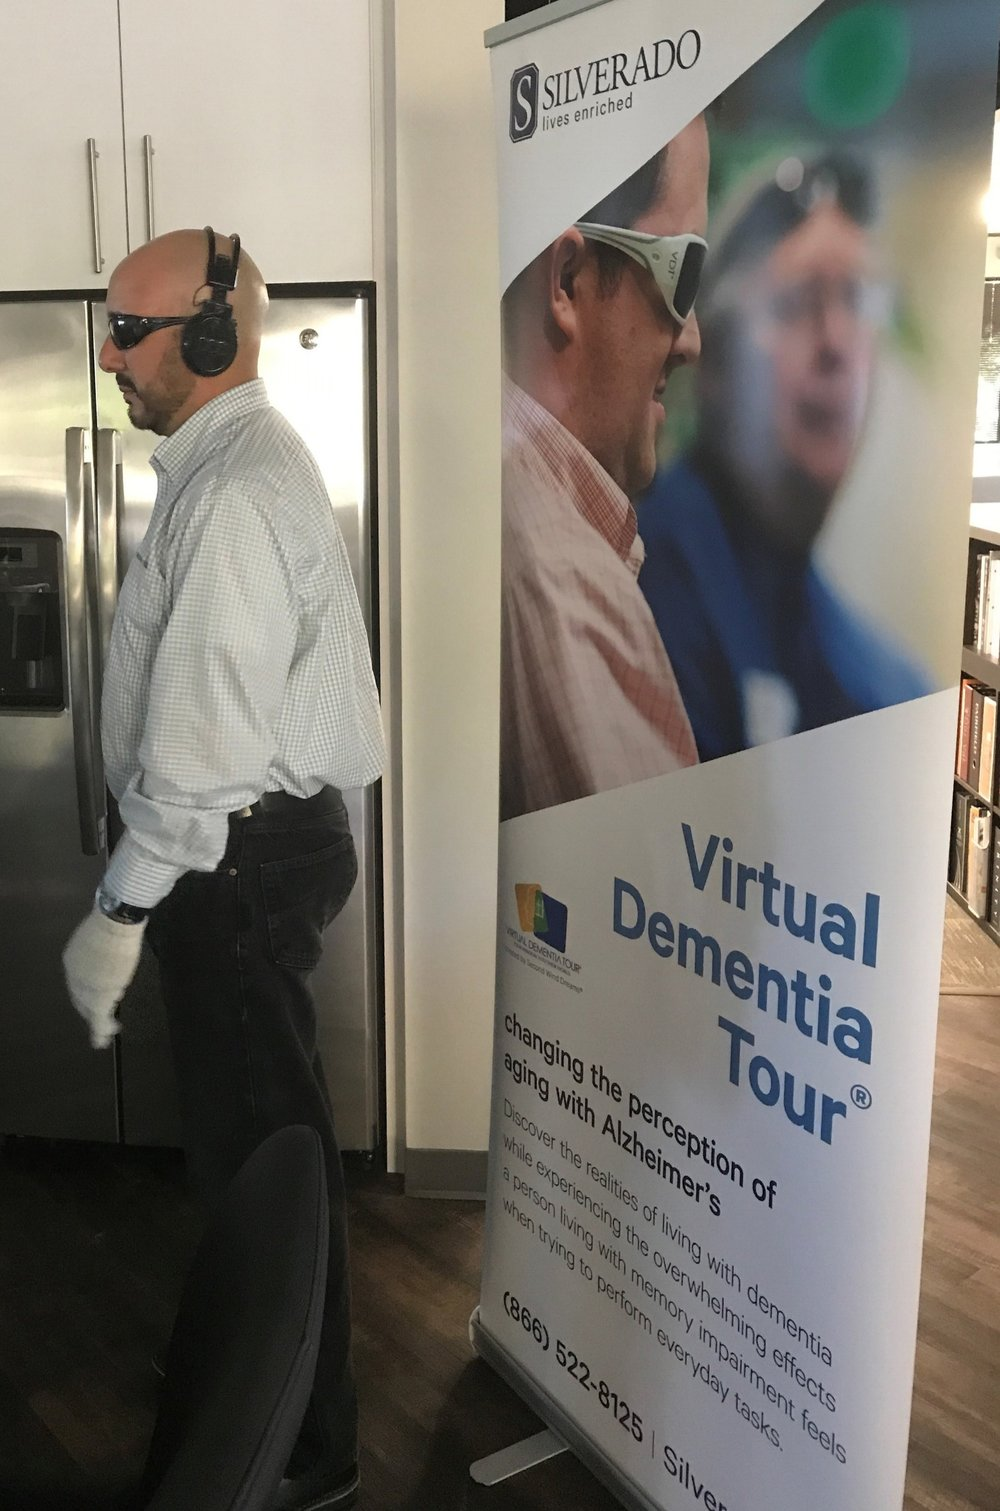 Steve excited to be going through the virtual dementia tour